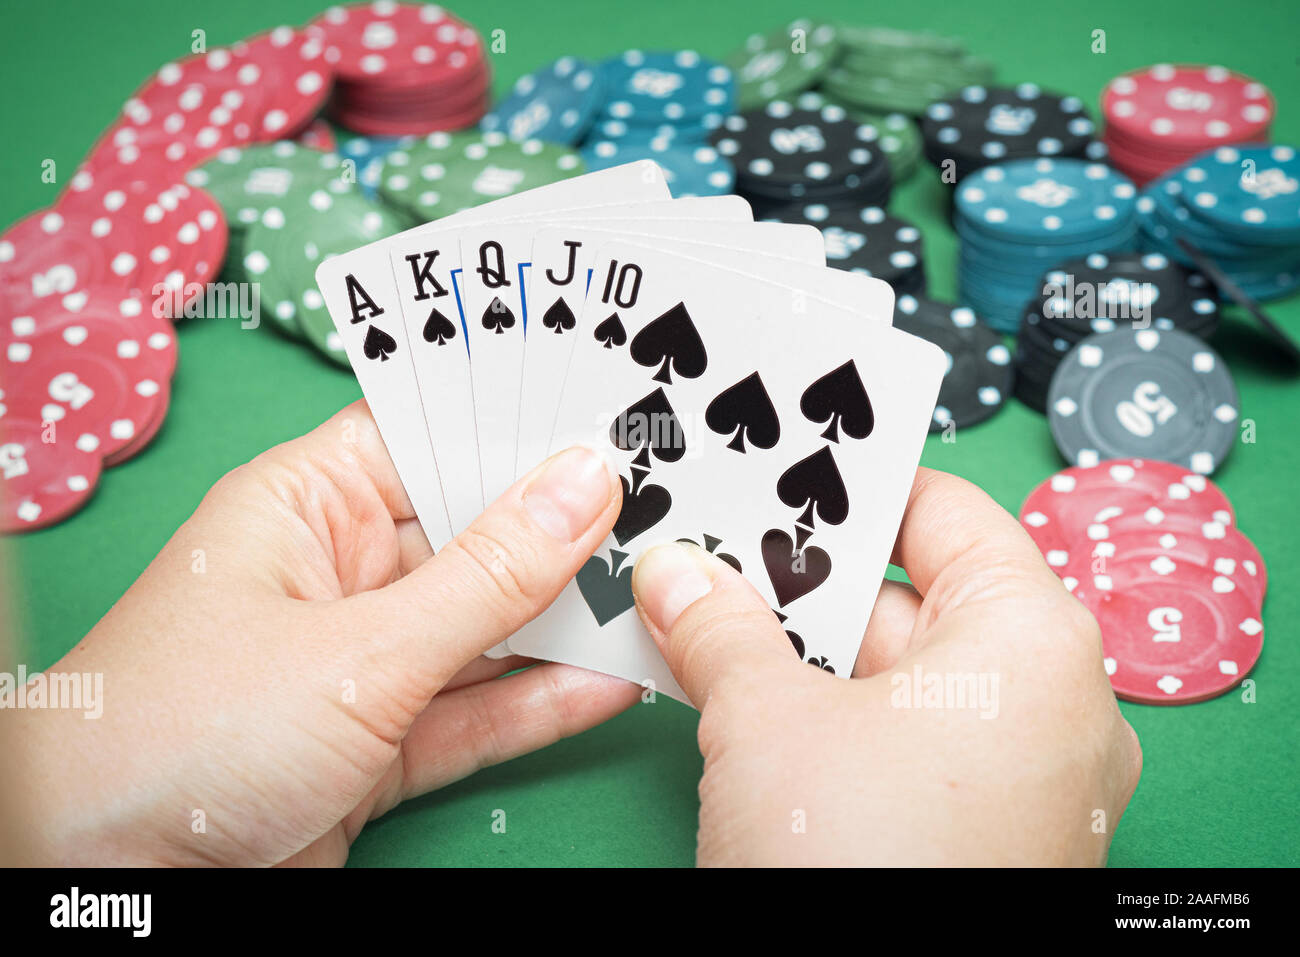 Royal Flush Cards In Female Hands And Poker Chips On Green Flat Lay Background Stock Photo Alamy